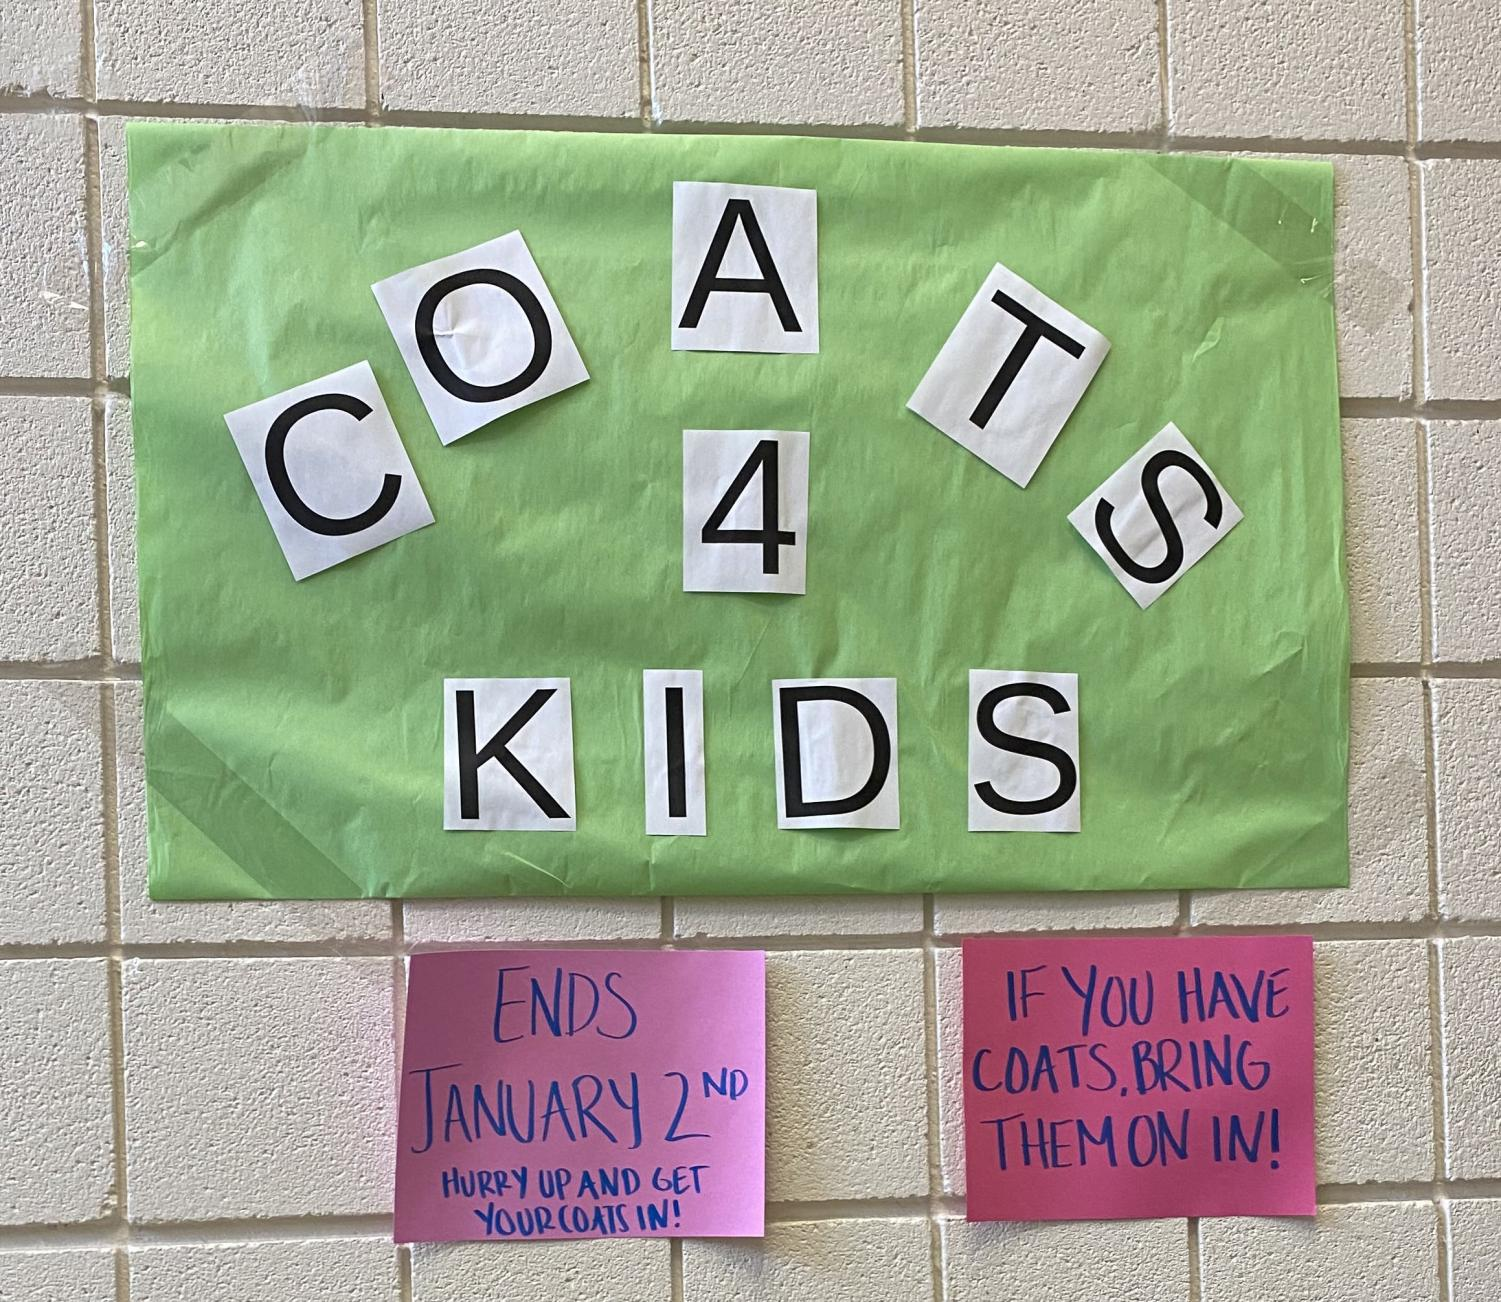 The Coats for Kids drive at Watertown Middle School will end Jan. 2, 2020.